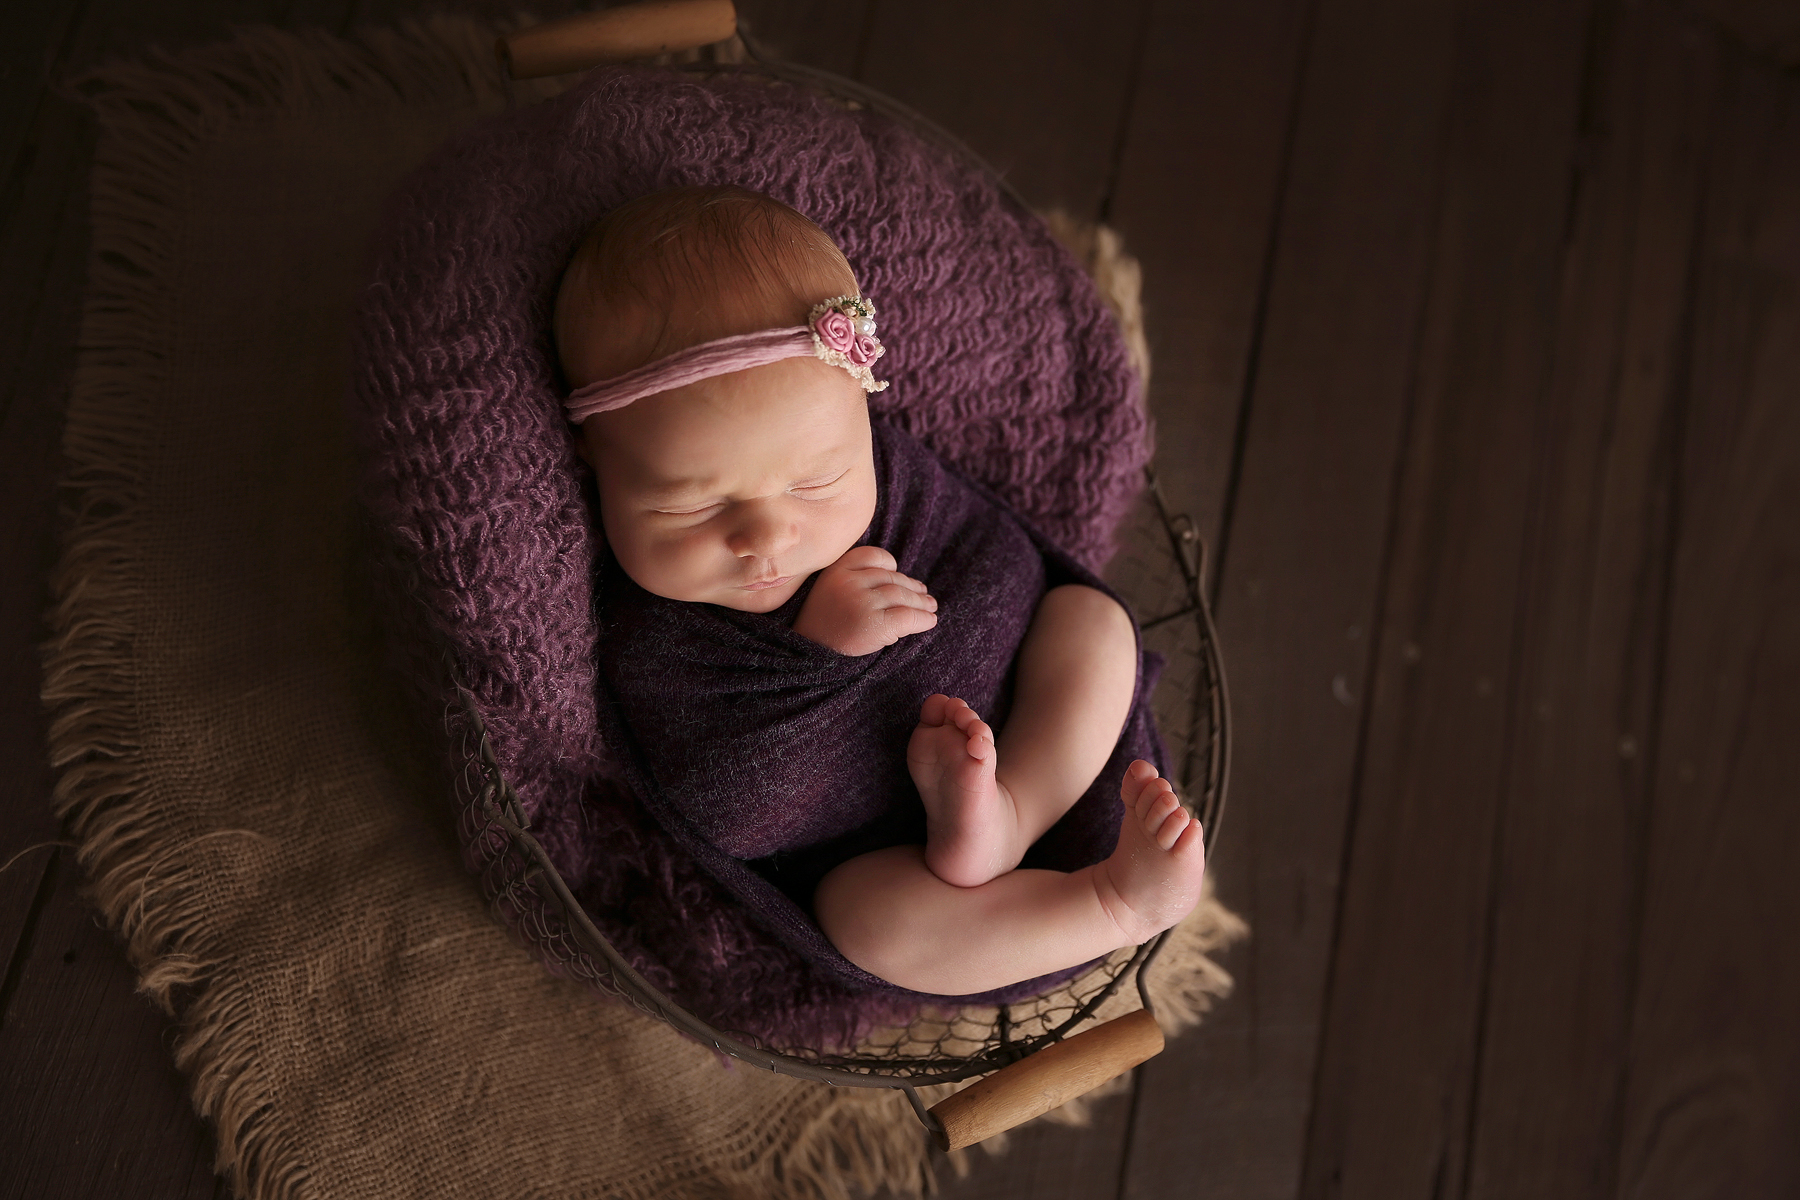 20180920 - Lisa Ormrod - Rose_Newborn40.